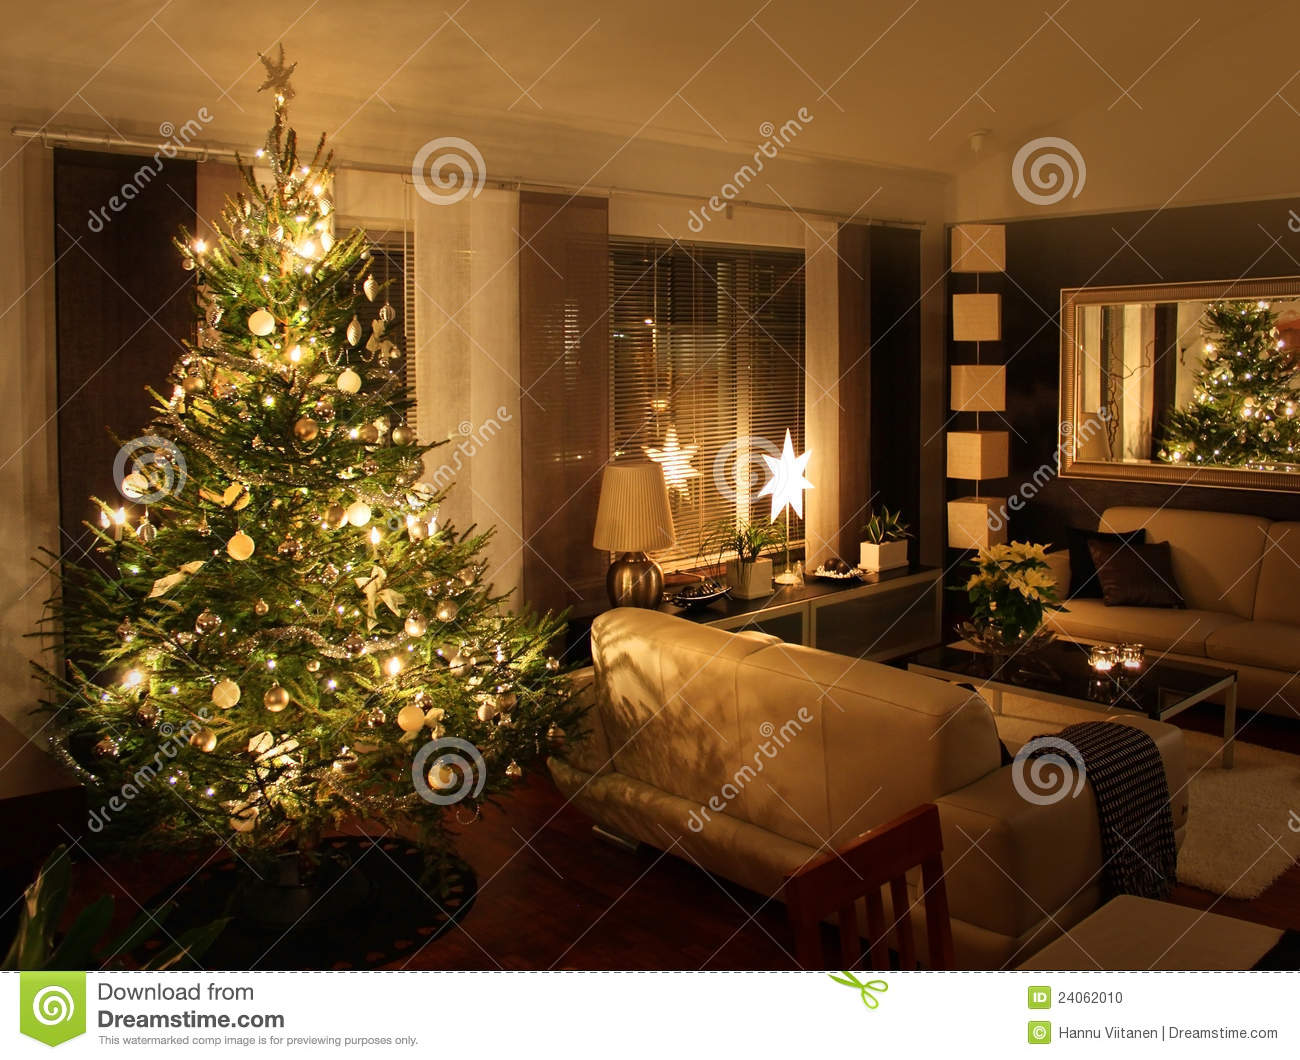 Christmas Tree In Living Room christmas tree in living room stock photo - image: 61334757